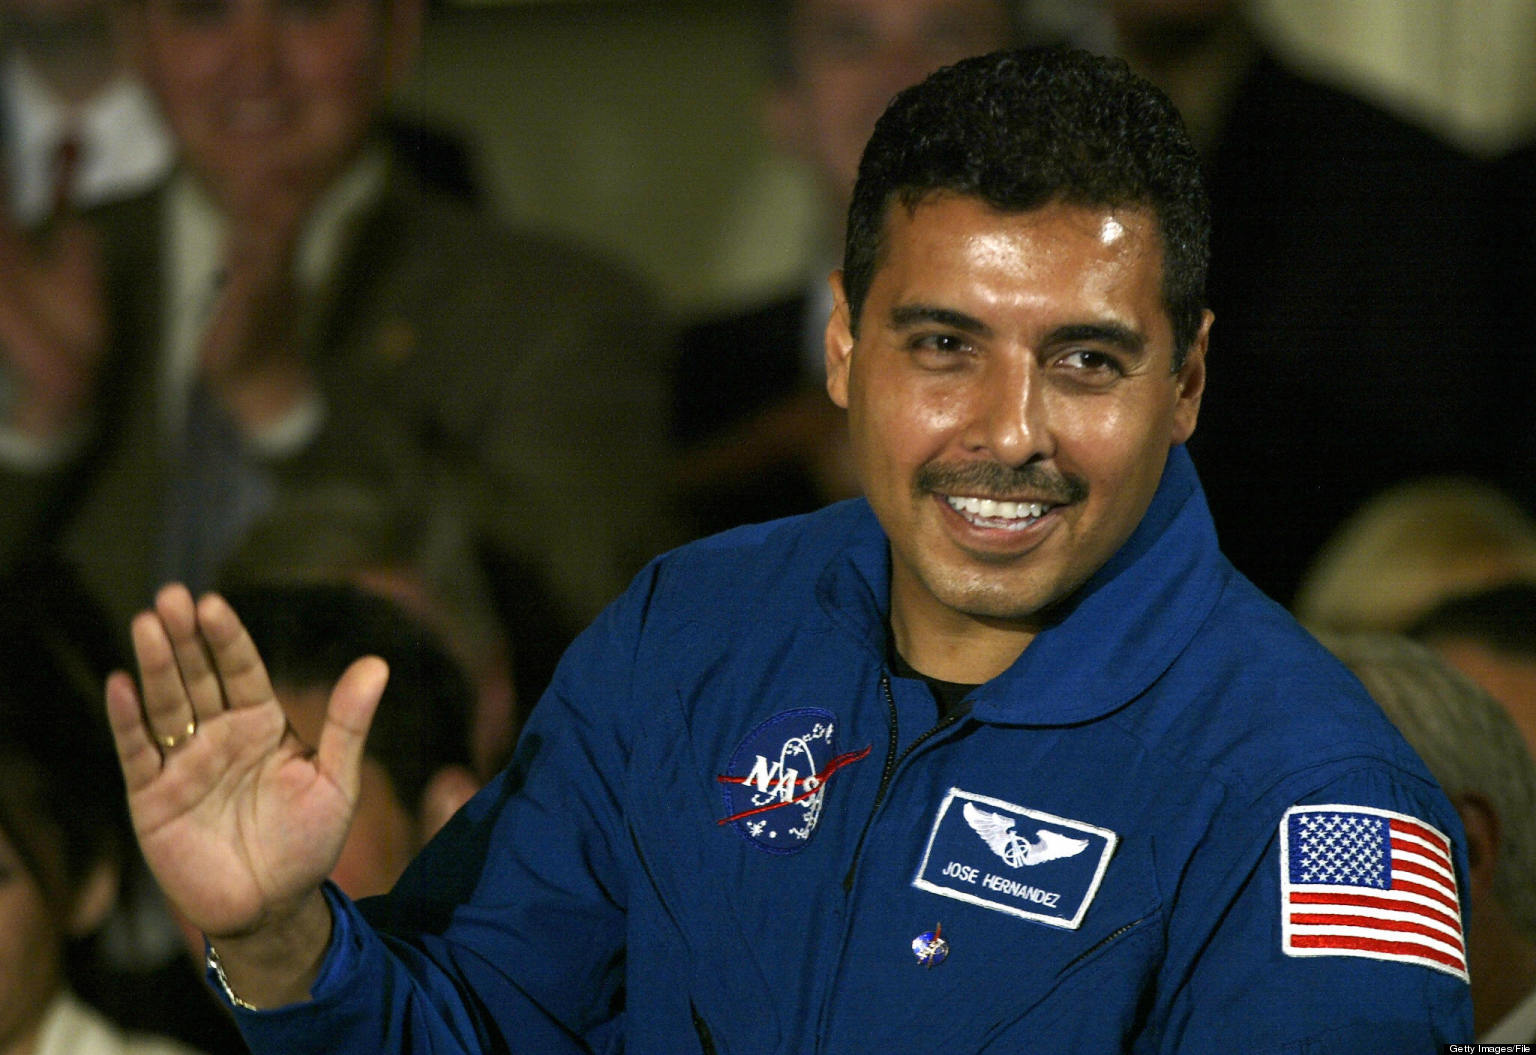 San Jose Teacher Seeks Funds To Bring Latino Astronaut To